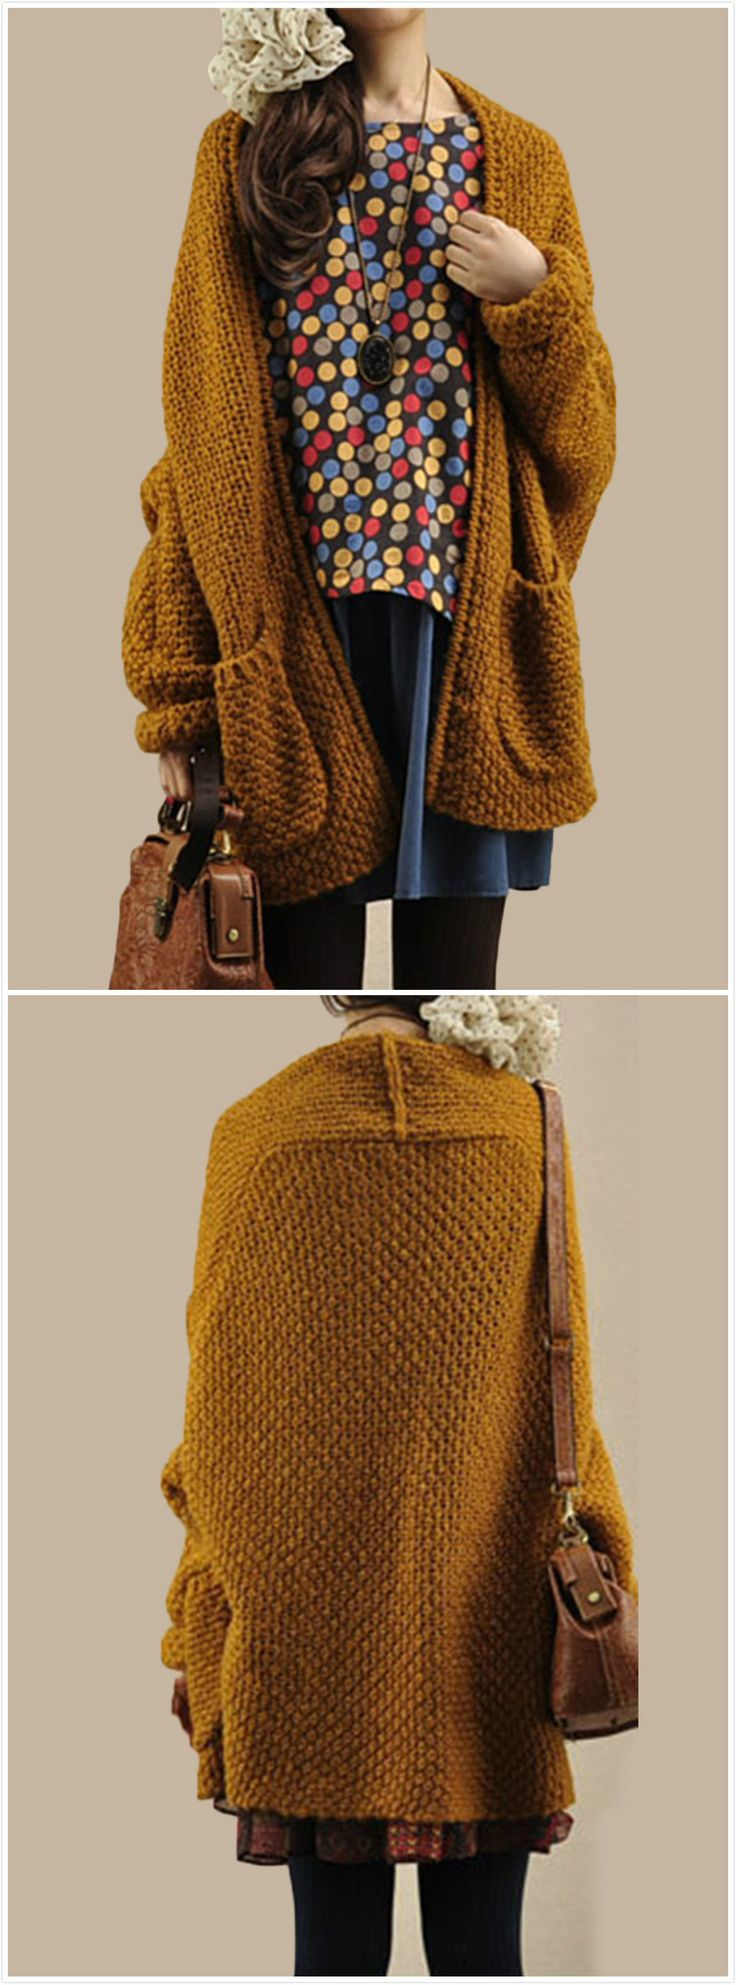 Best 25  Yellow cardigan outfits ideas on Pinterest   Yellow jeans ...